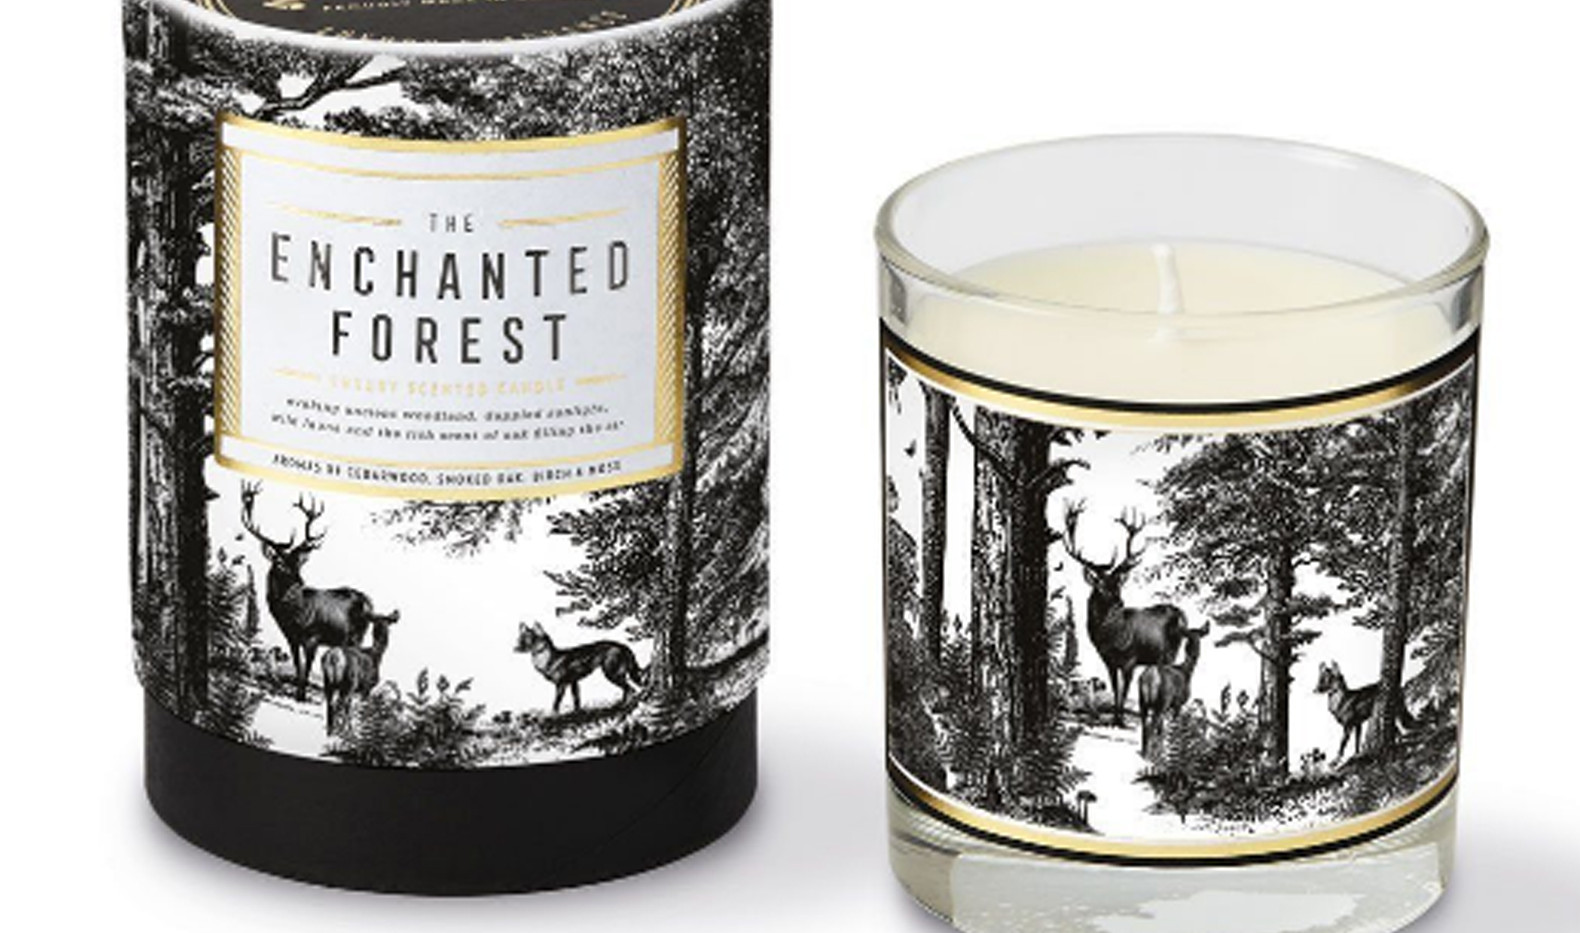 The Enchanted Forest Candle.jpg